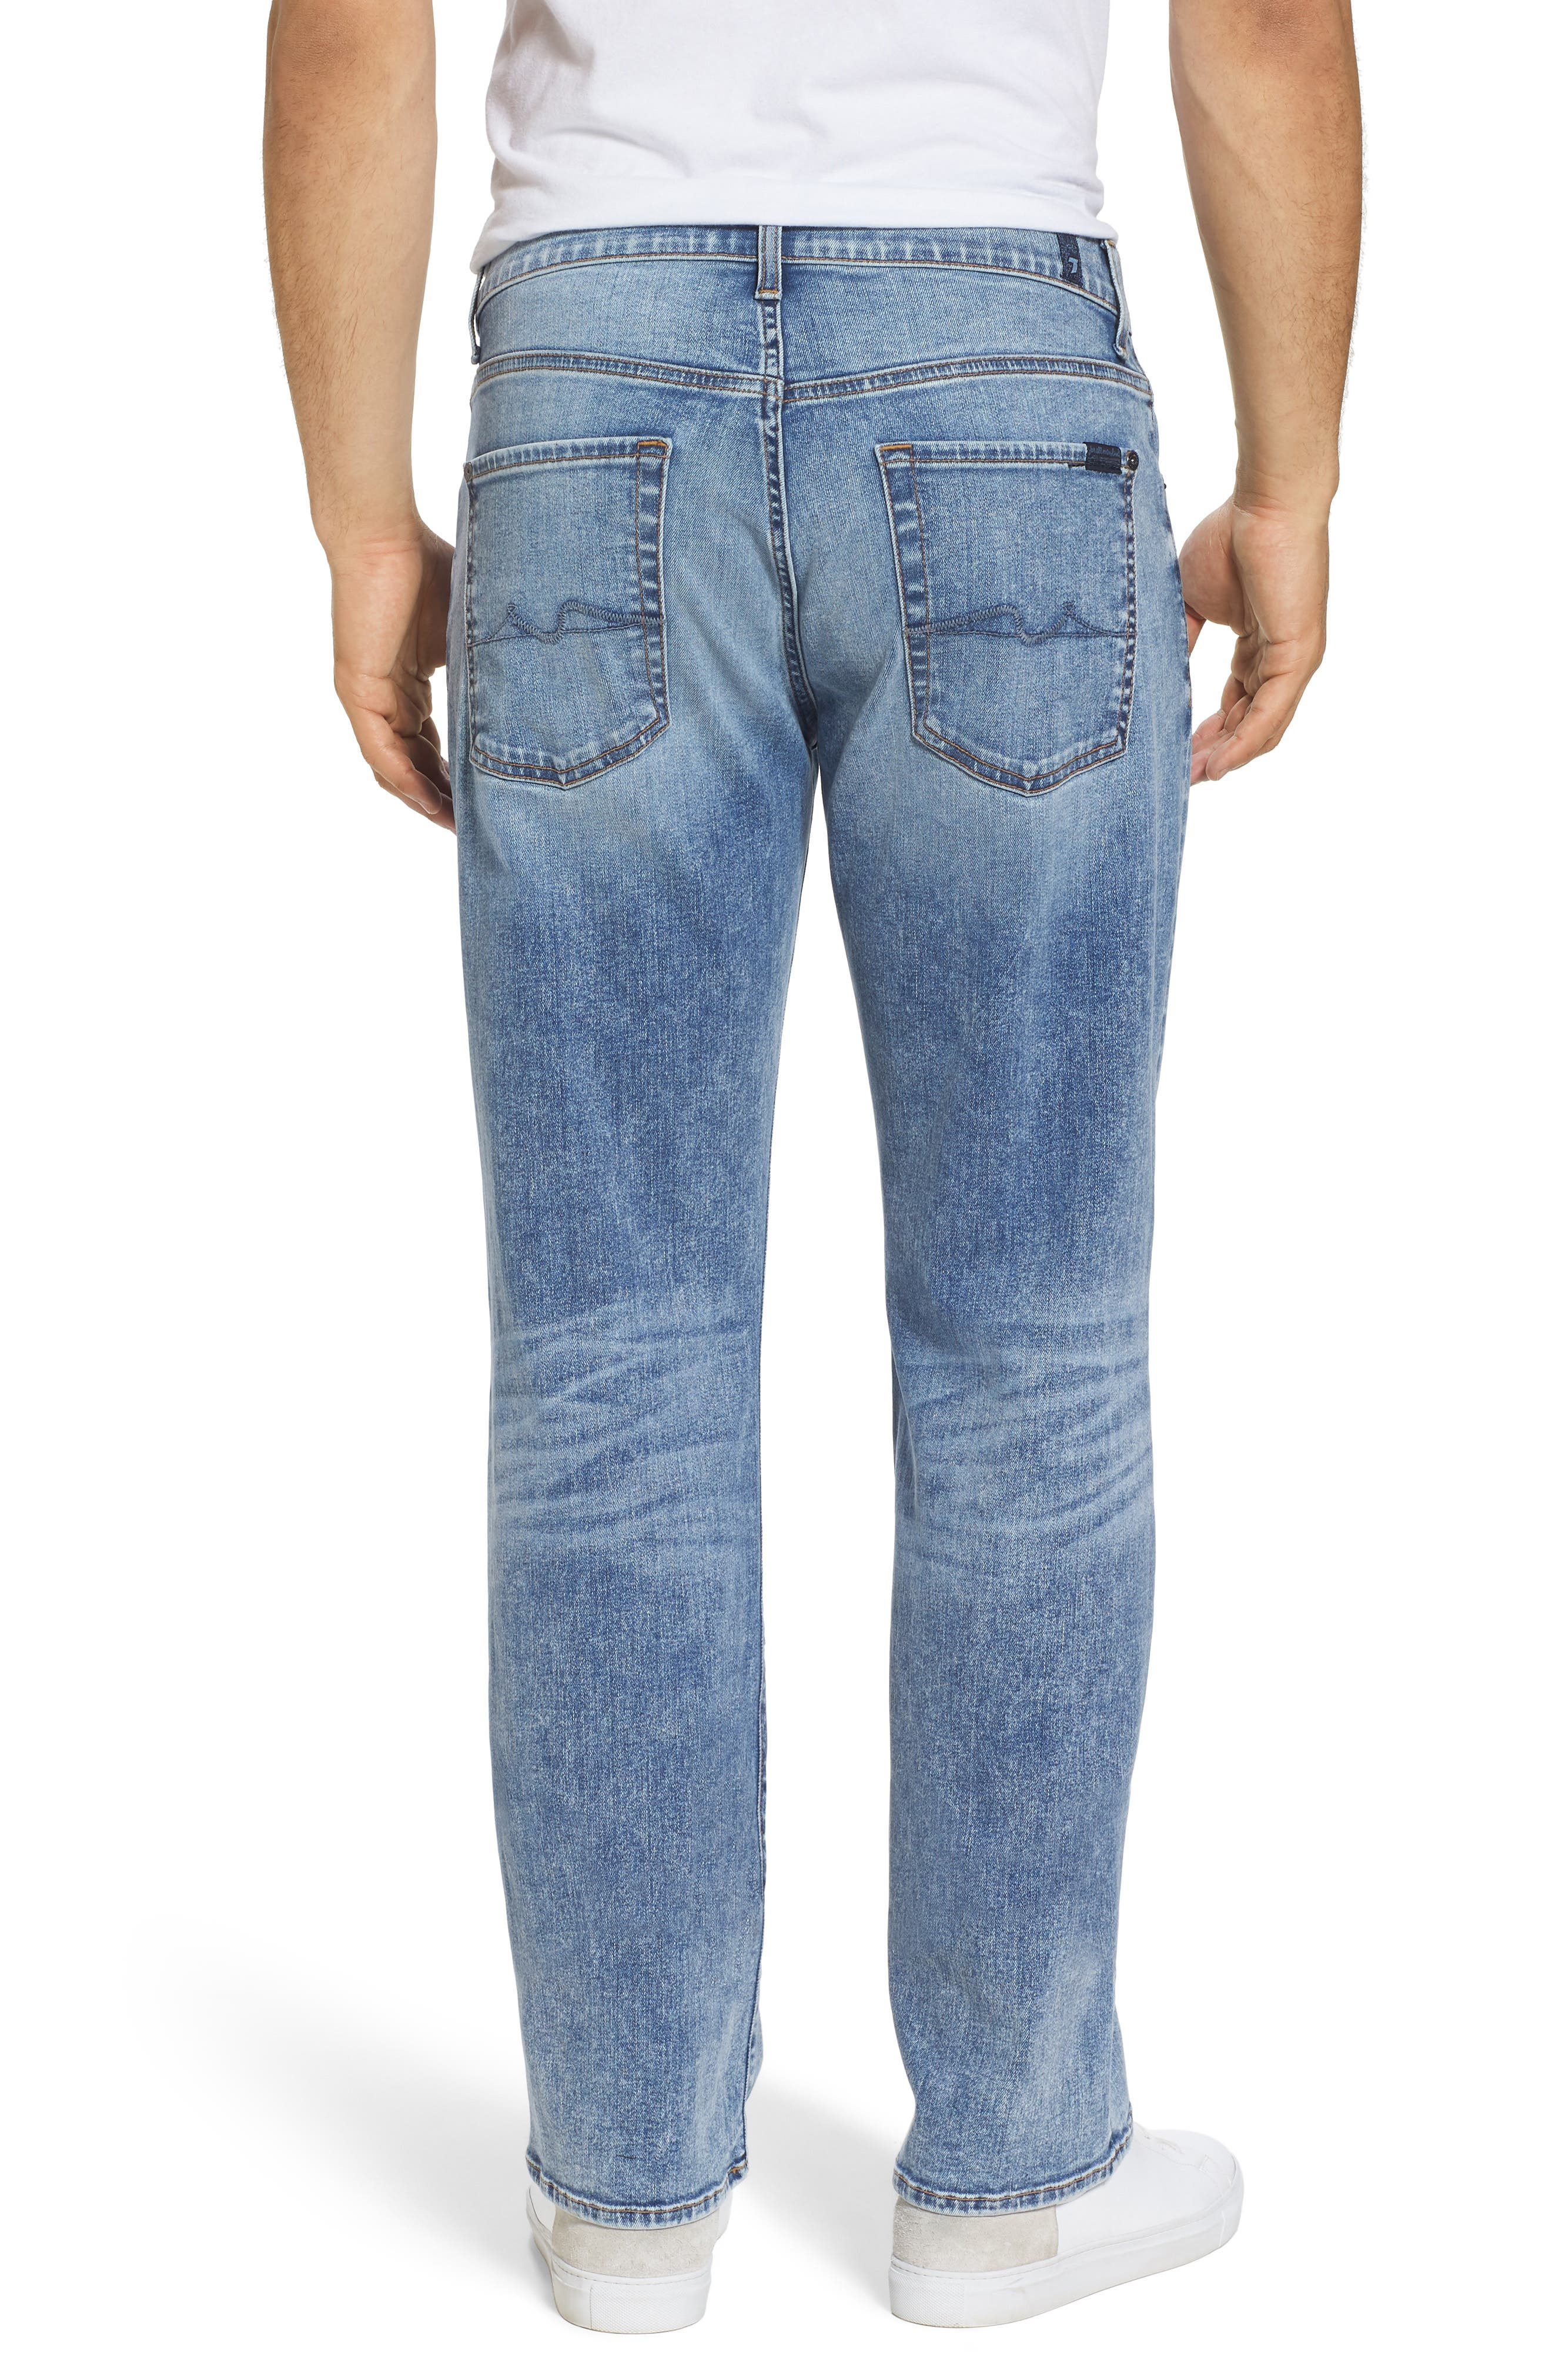 Austyn - Luxe Performance Relaxed Fit Jeans,                             Alternate thumbnail 2, color,                             404